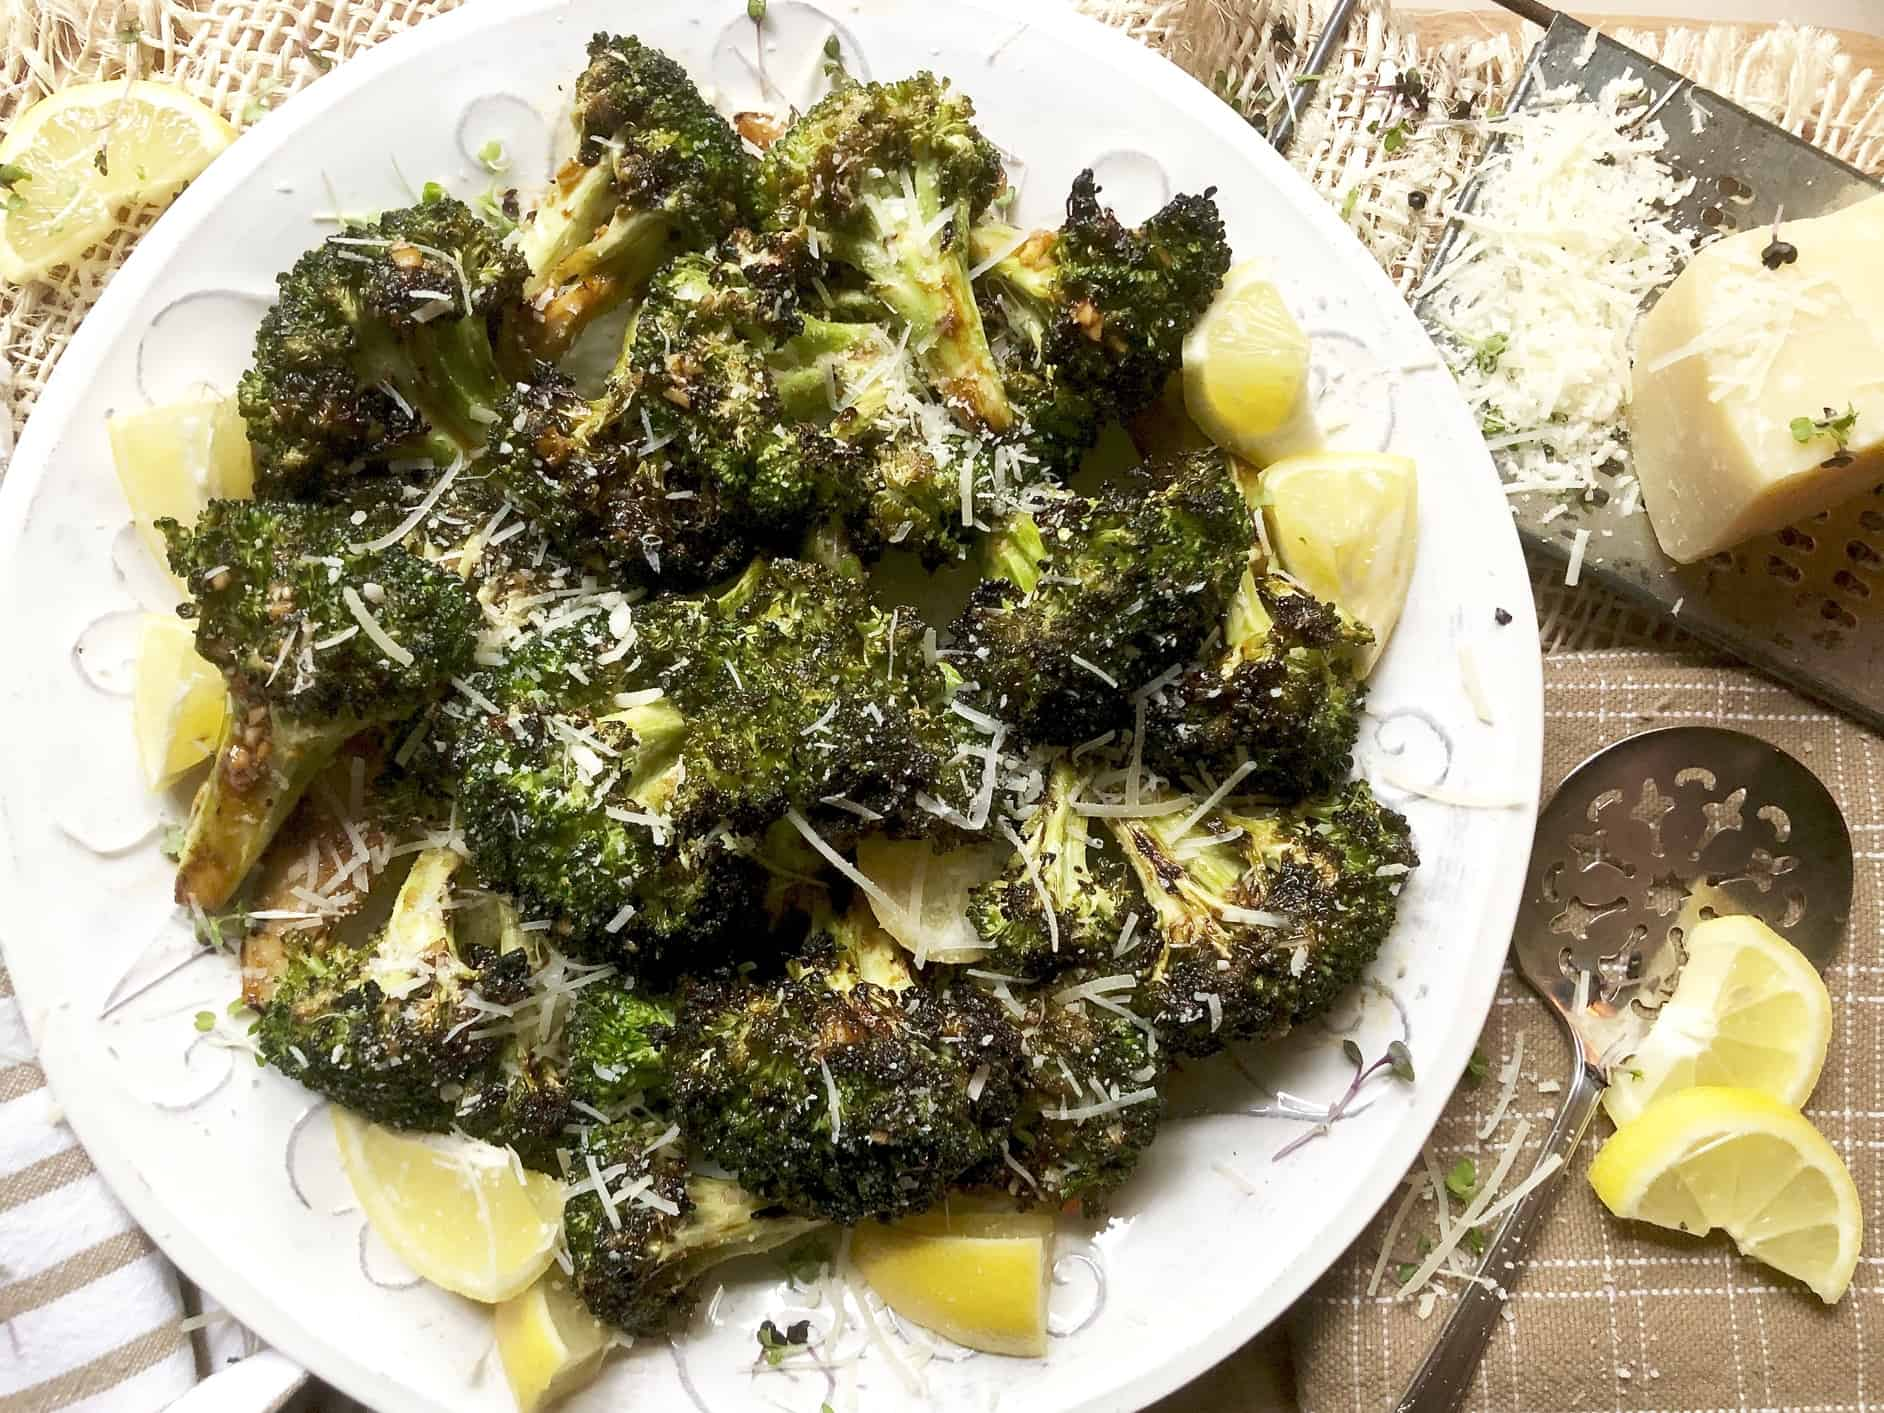 grilled marinated broccoli spears